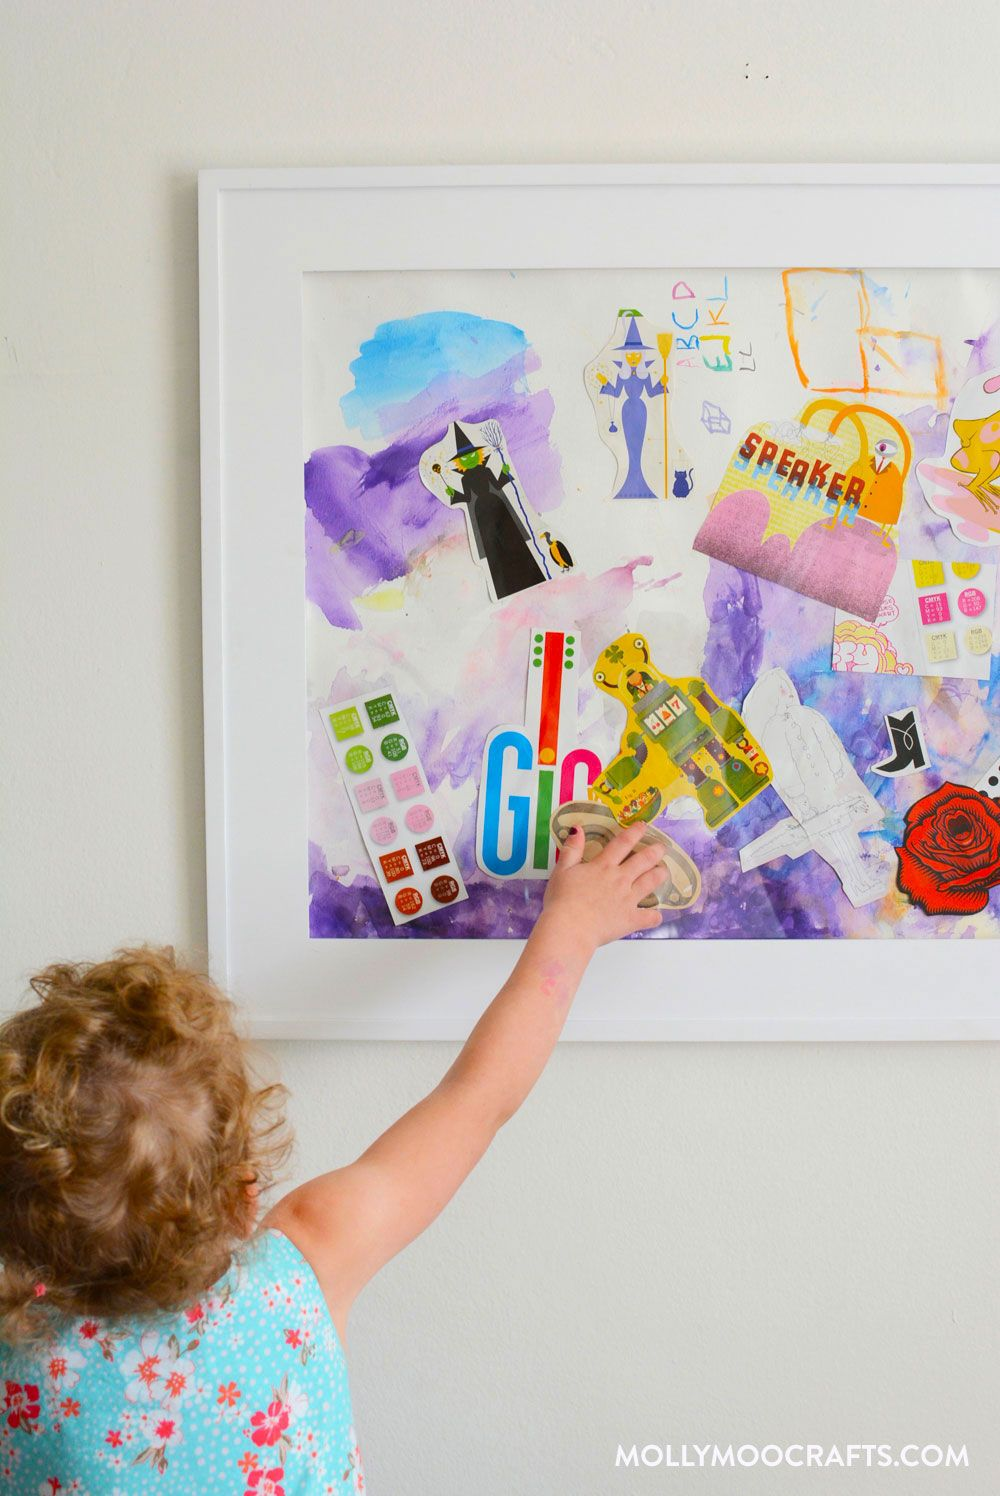 Fun Art Project For Kids: Mixed Media Collage | Pinterest | Mixed ...